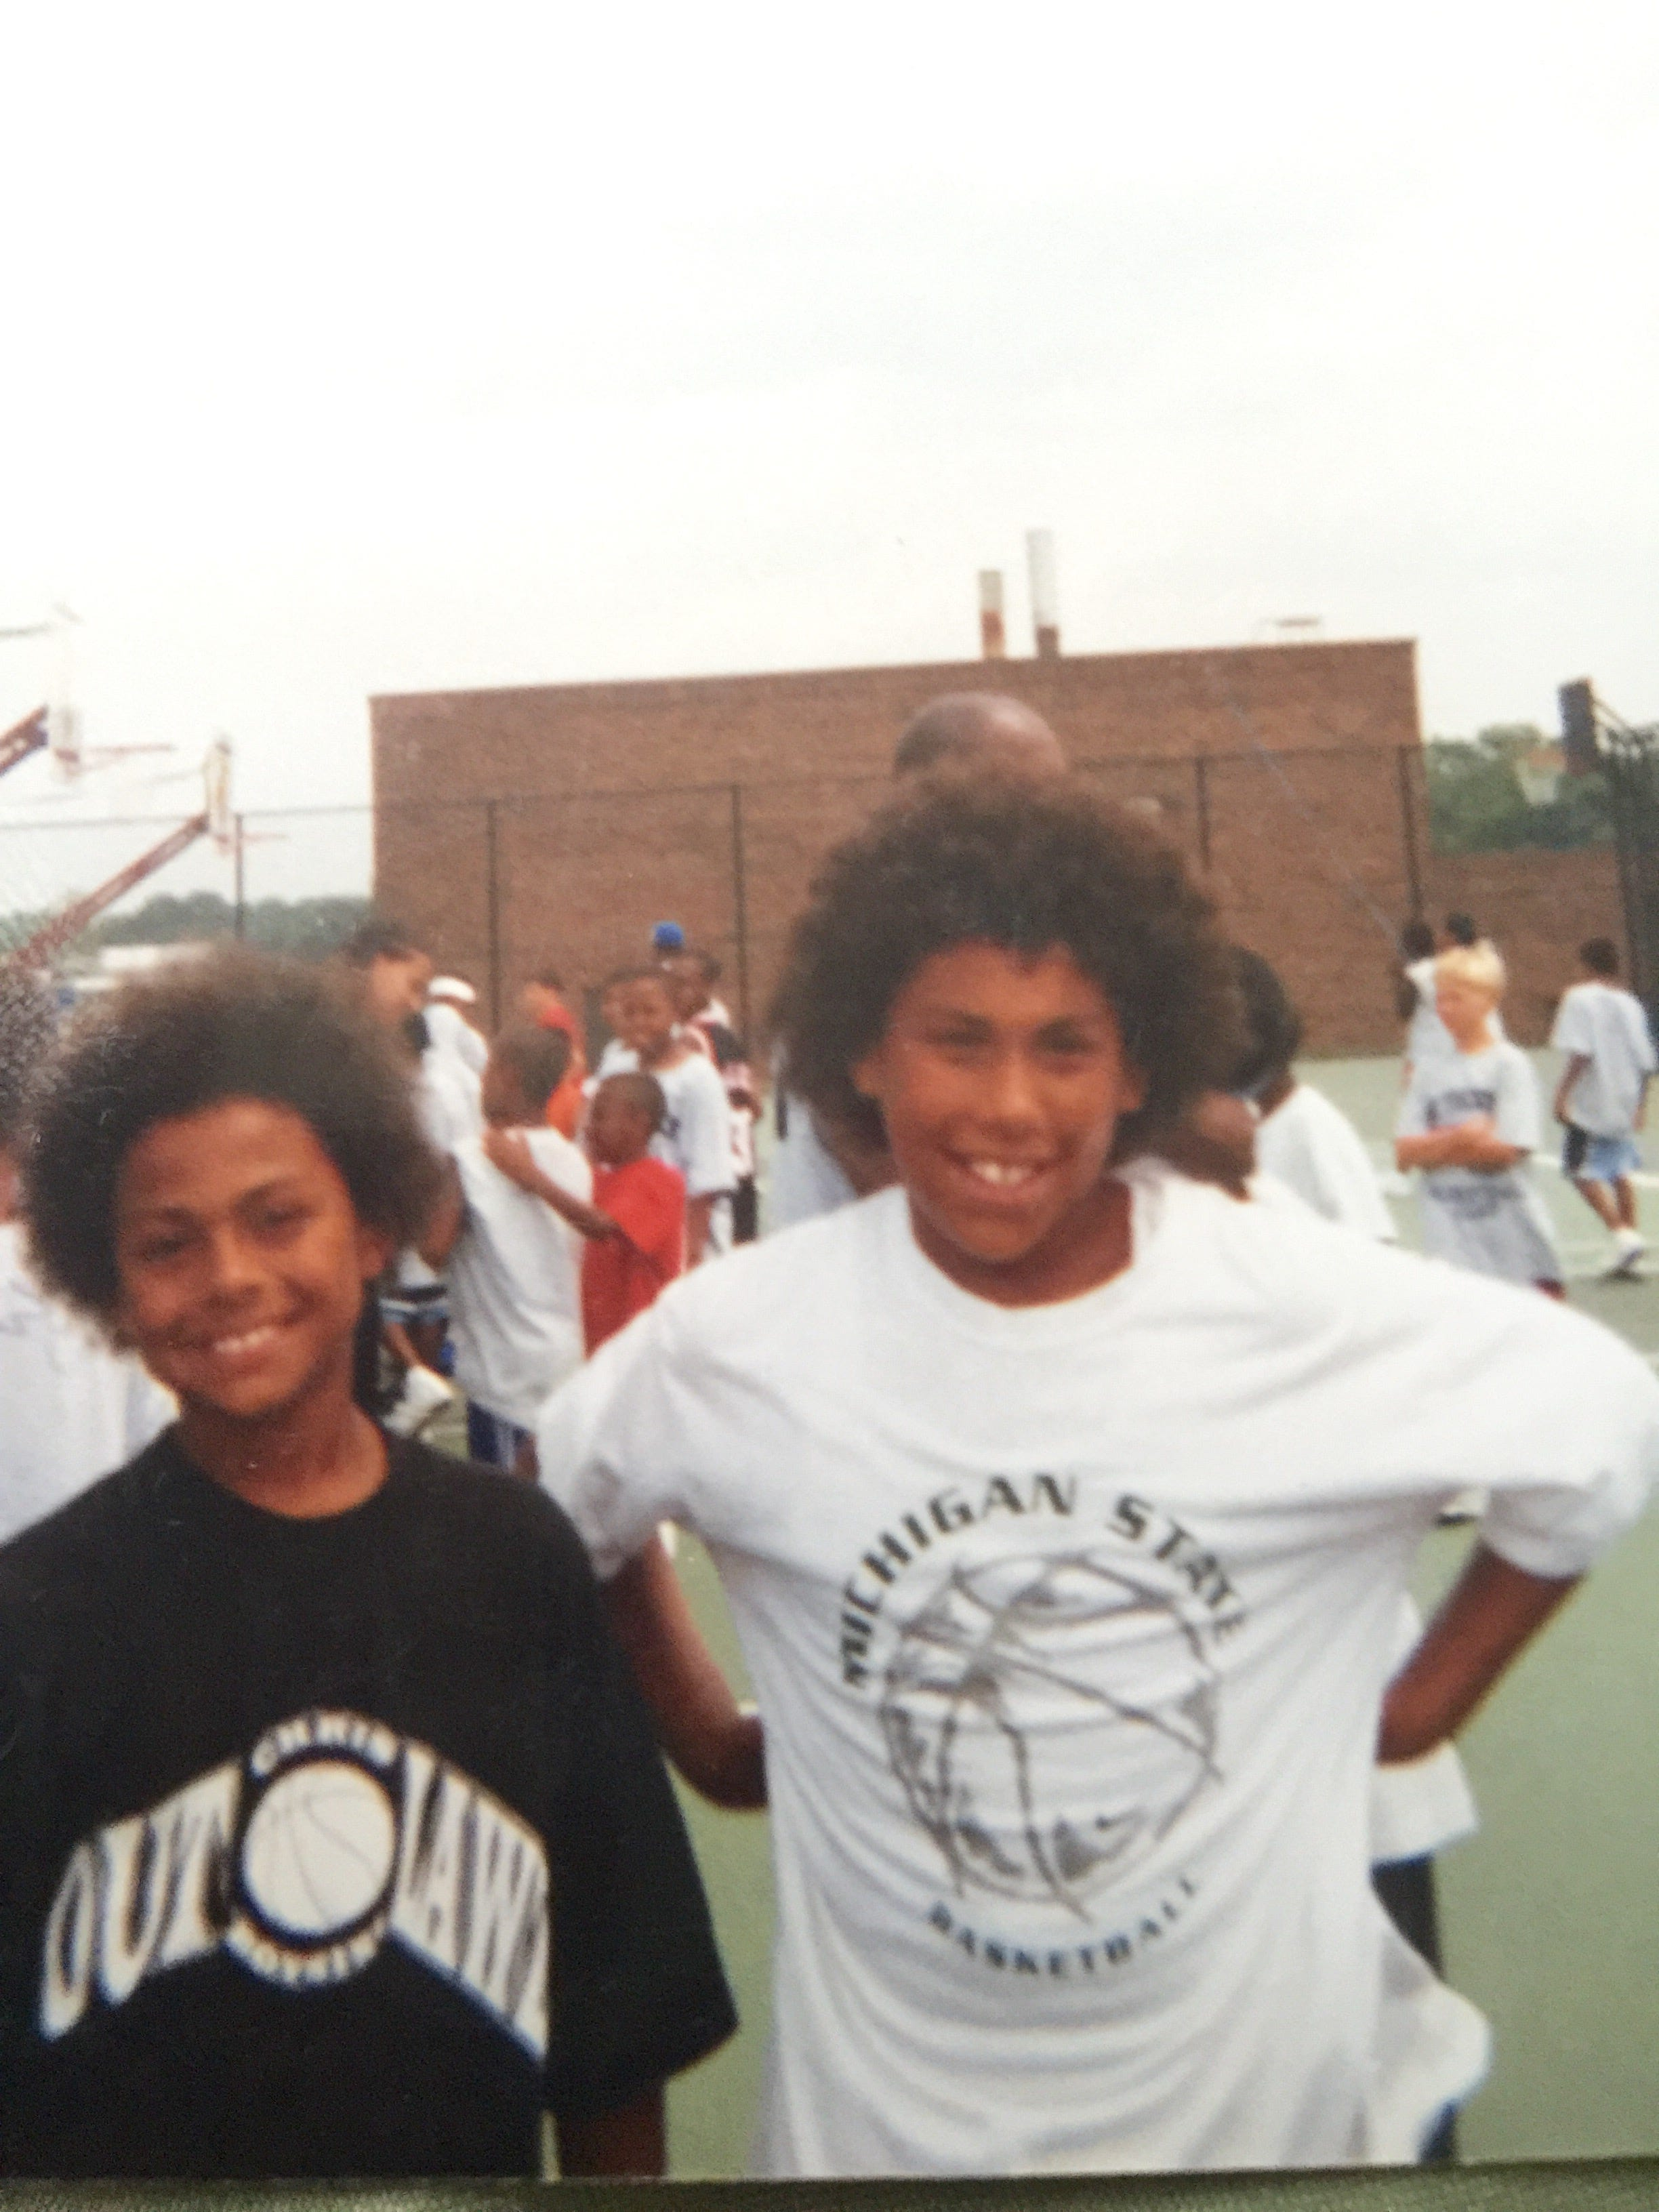 Photo Provided Sixth Graders Bryn Forbes, Left, And